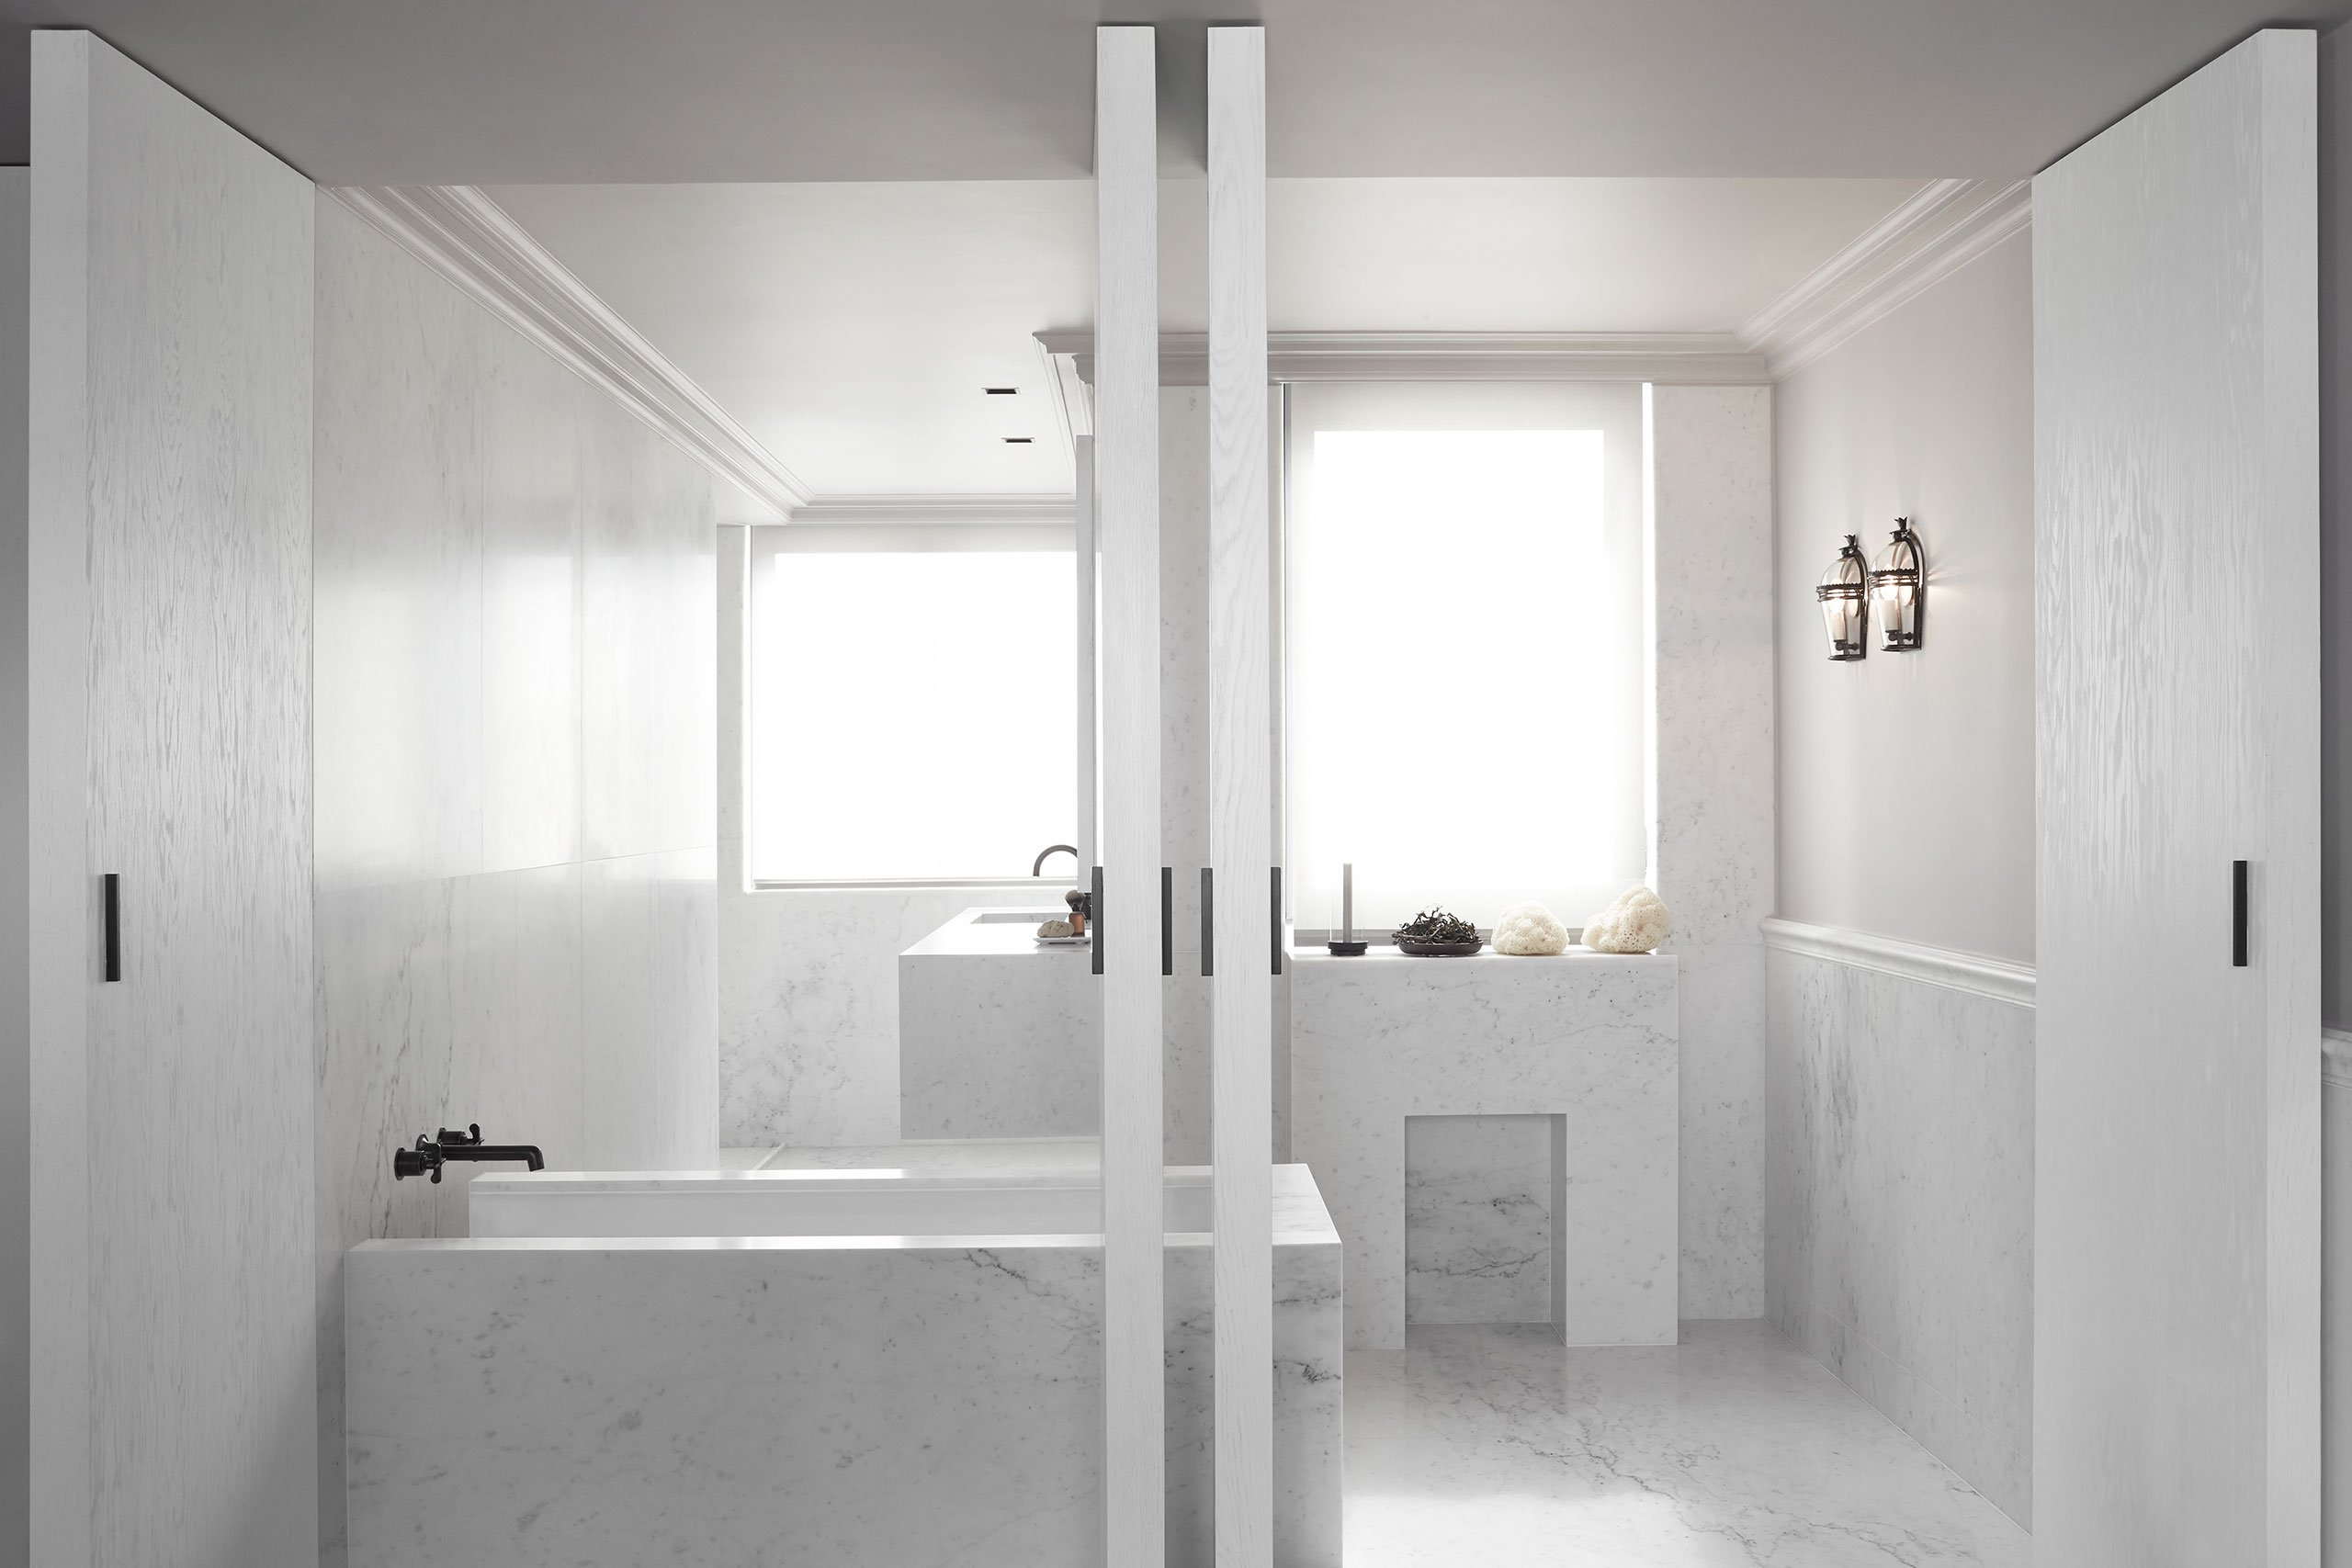 The bathroom is clad with white marble and is highlighted with black fixtures